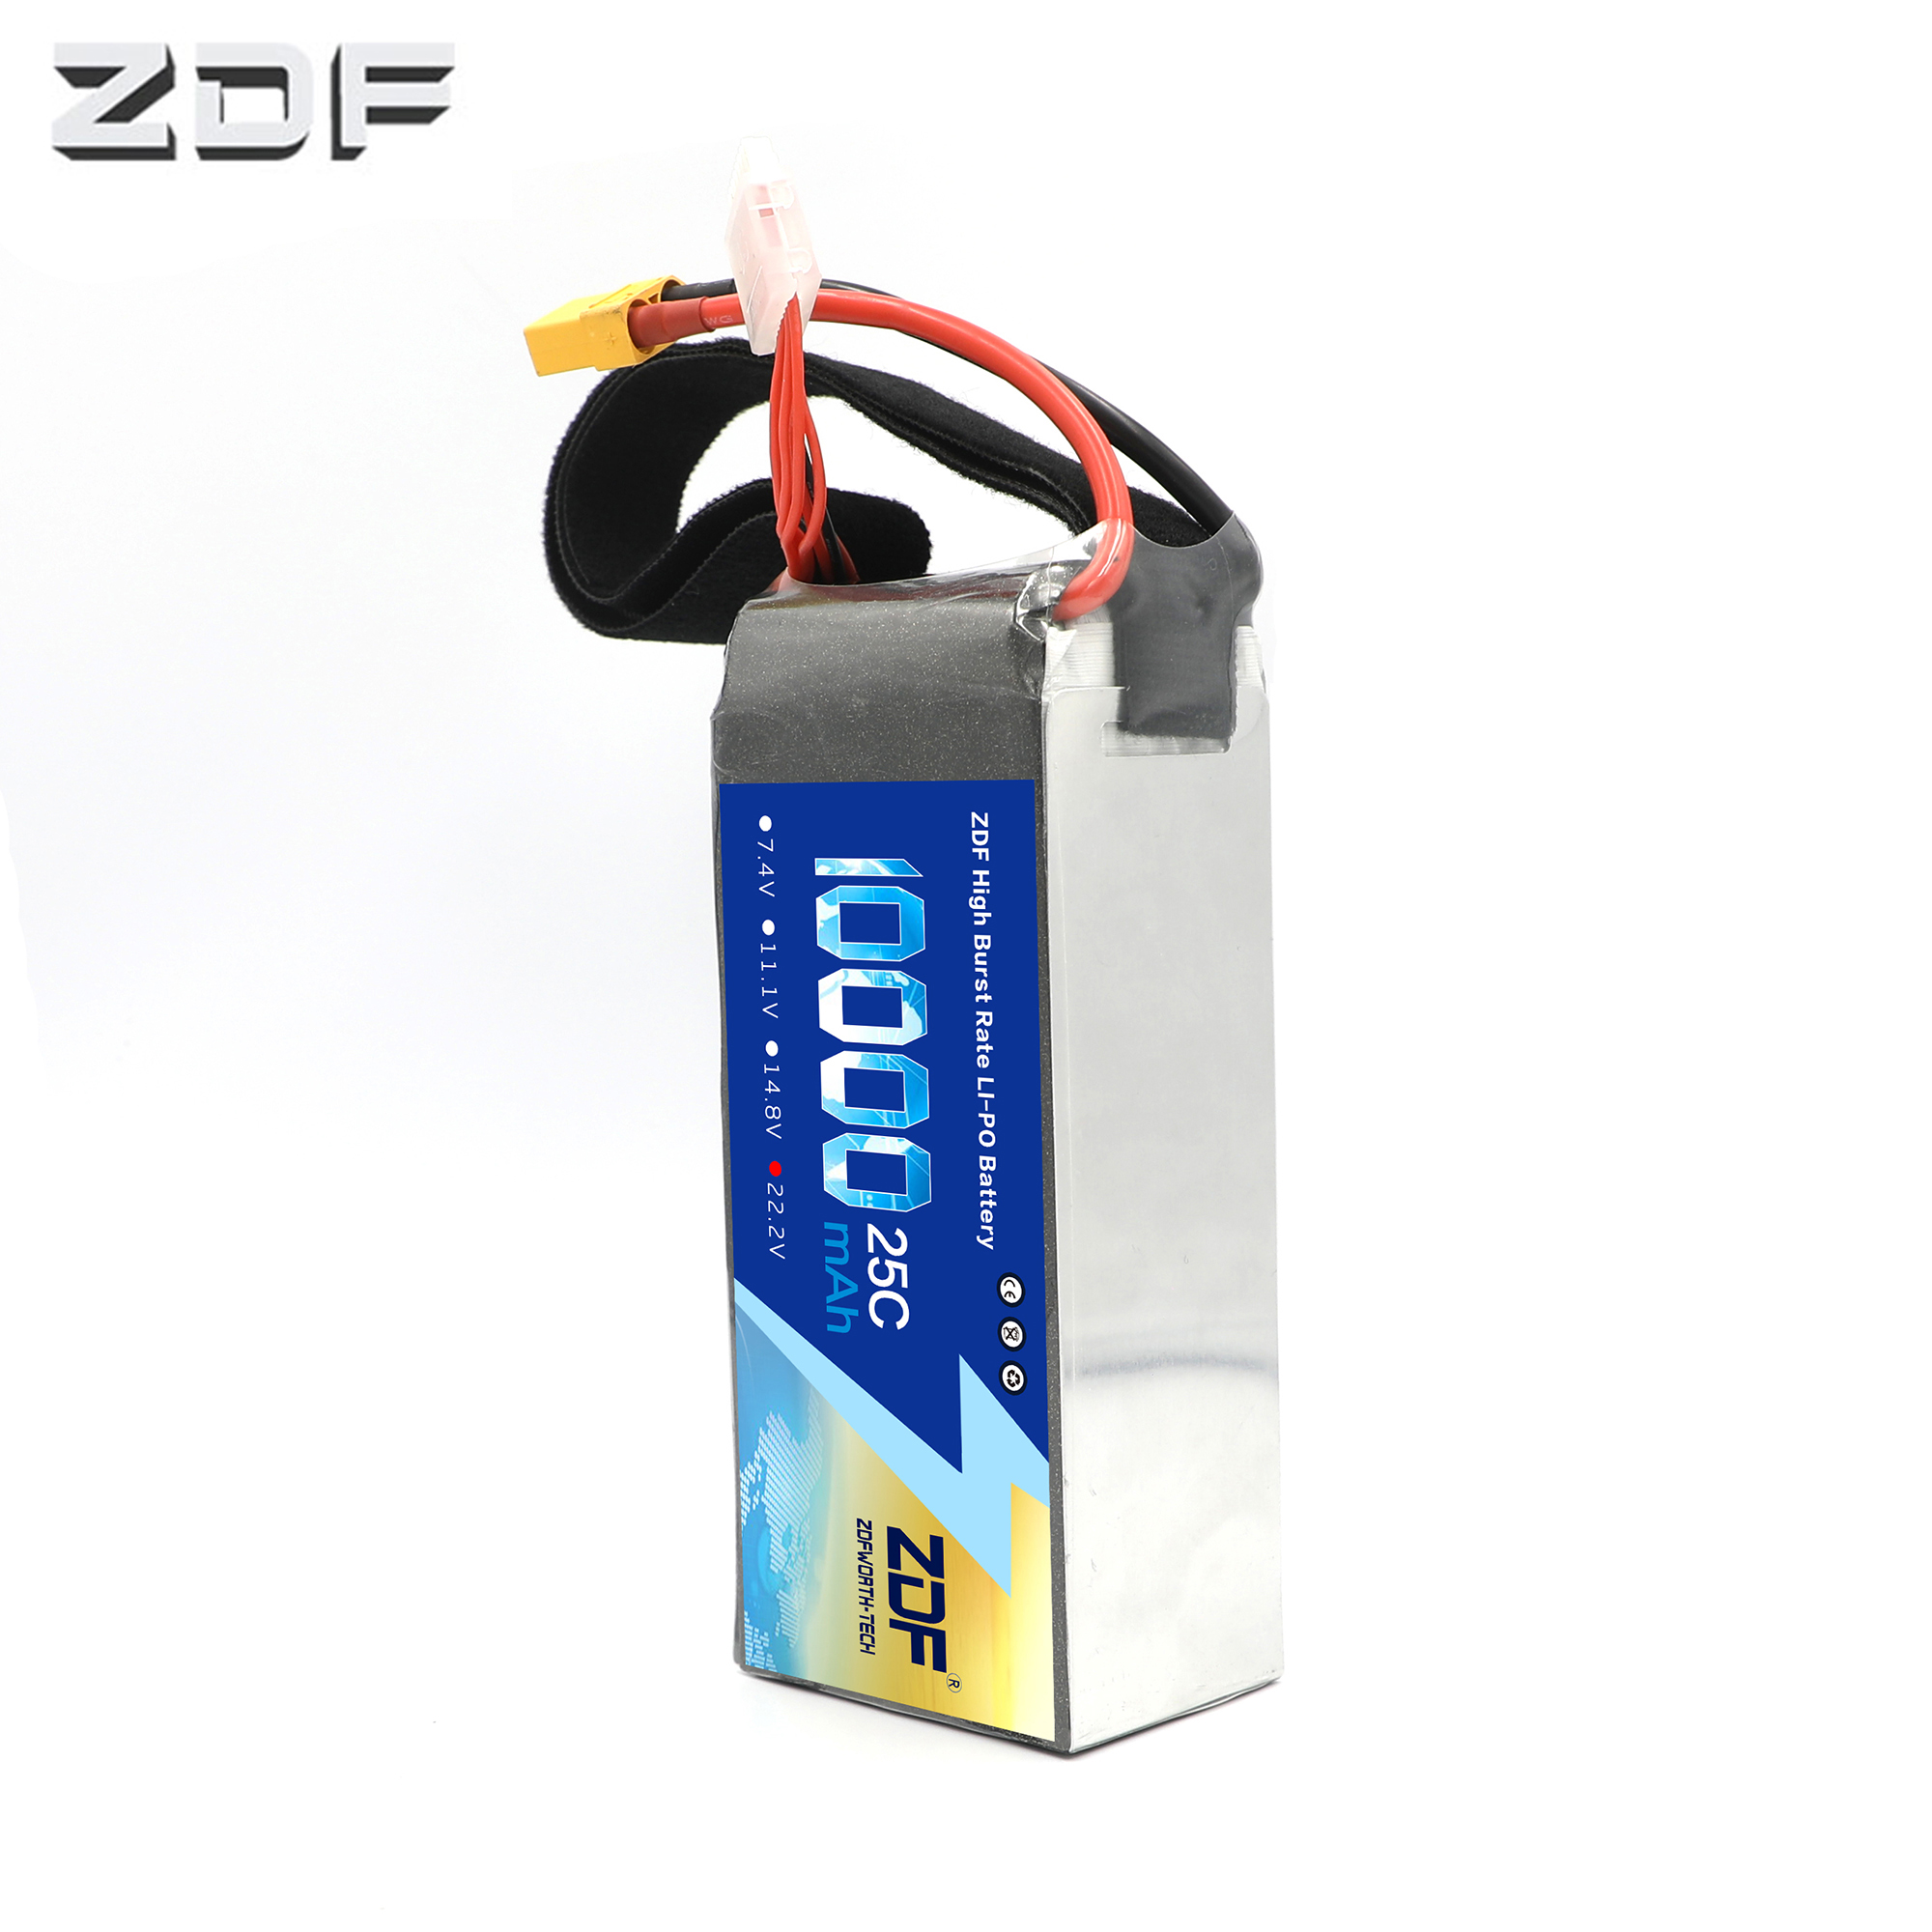 2019 ZDF Power RC LiPo Battery 6S 22.2V 10000mAh 25C Max 50C For UAV Multi-rotor Quadcopter Airplane Boat Car FPV Truck Drone2019 ZDF Power RC LiPo Battery 6S 22.2V 10000mAh 25C Max 50C For UAV Multi-rotor Quadcopter Airplane Boat Car FPV Truck Drone